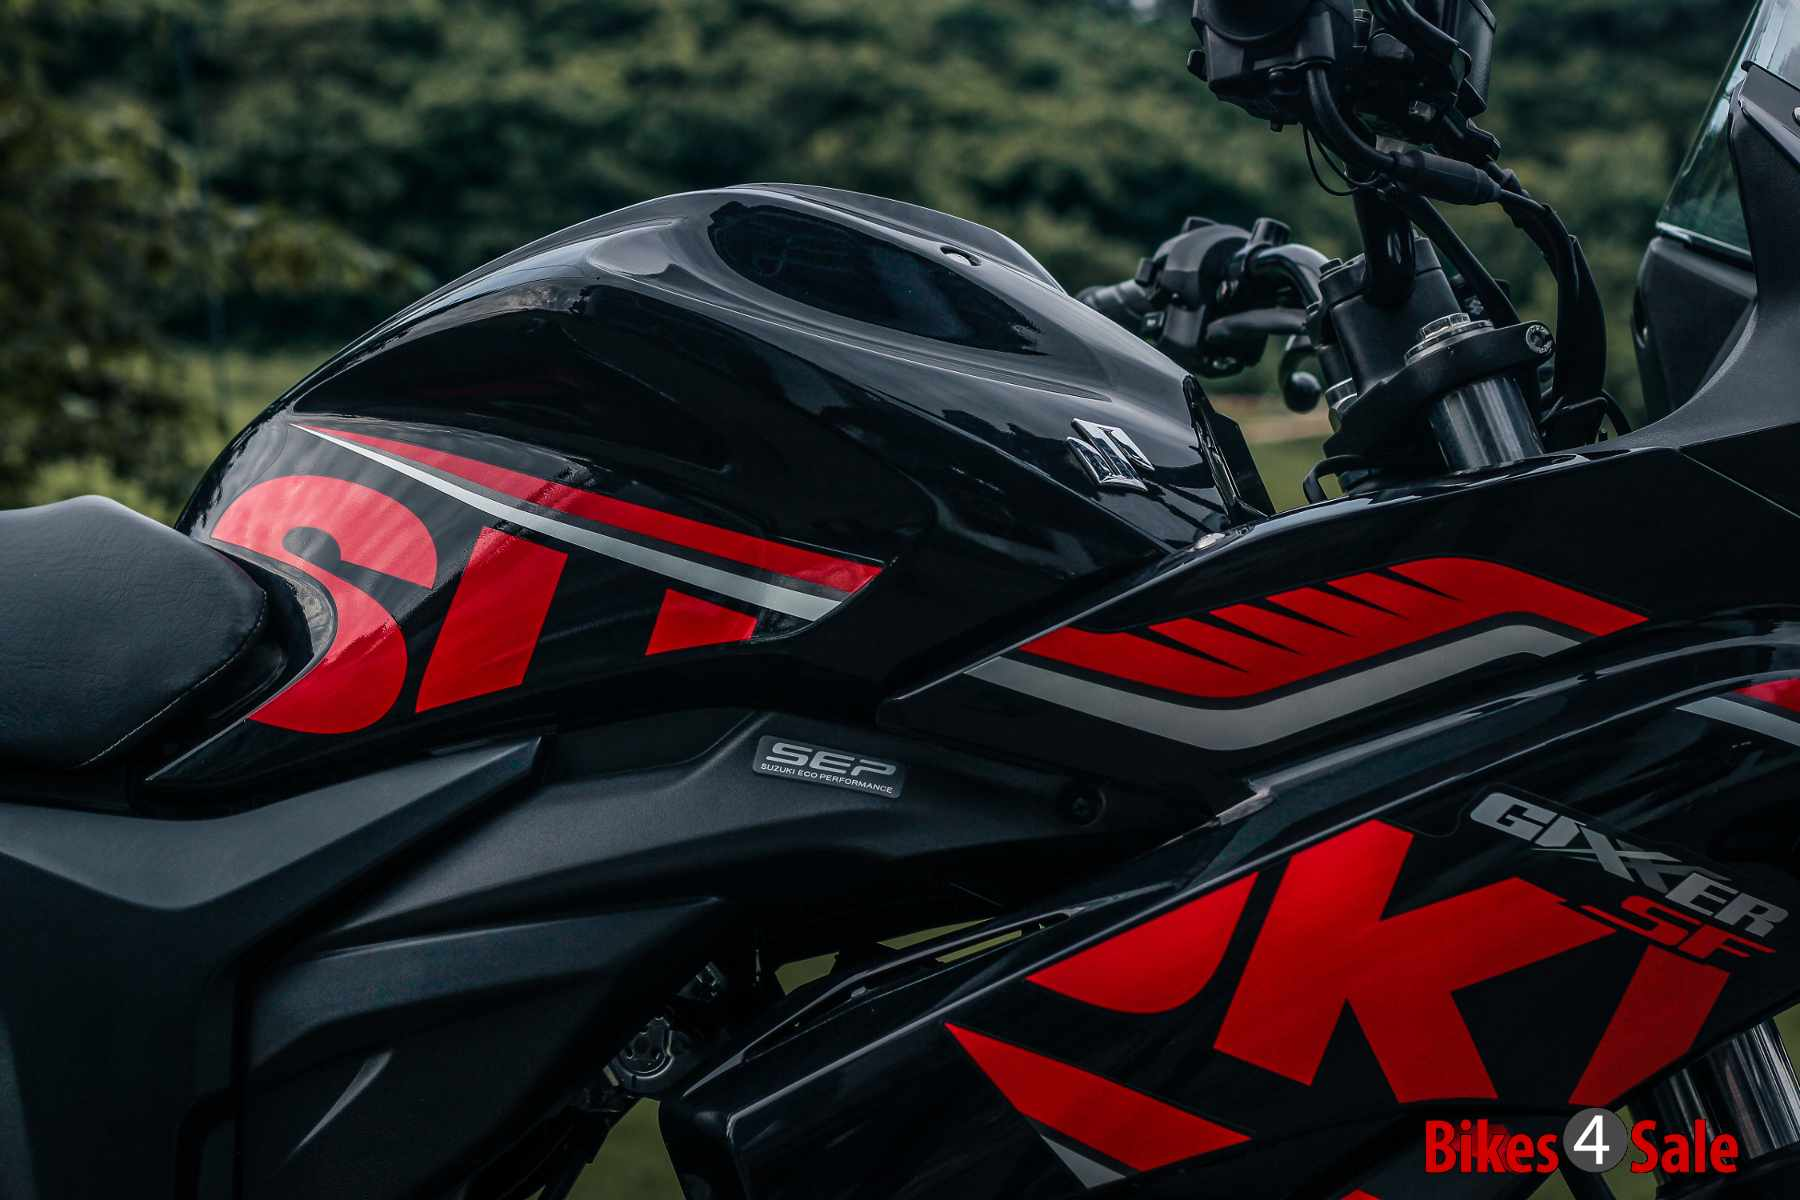 Fairinig kit of Gixxer SF Fi